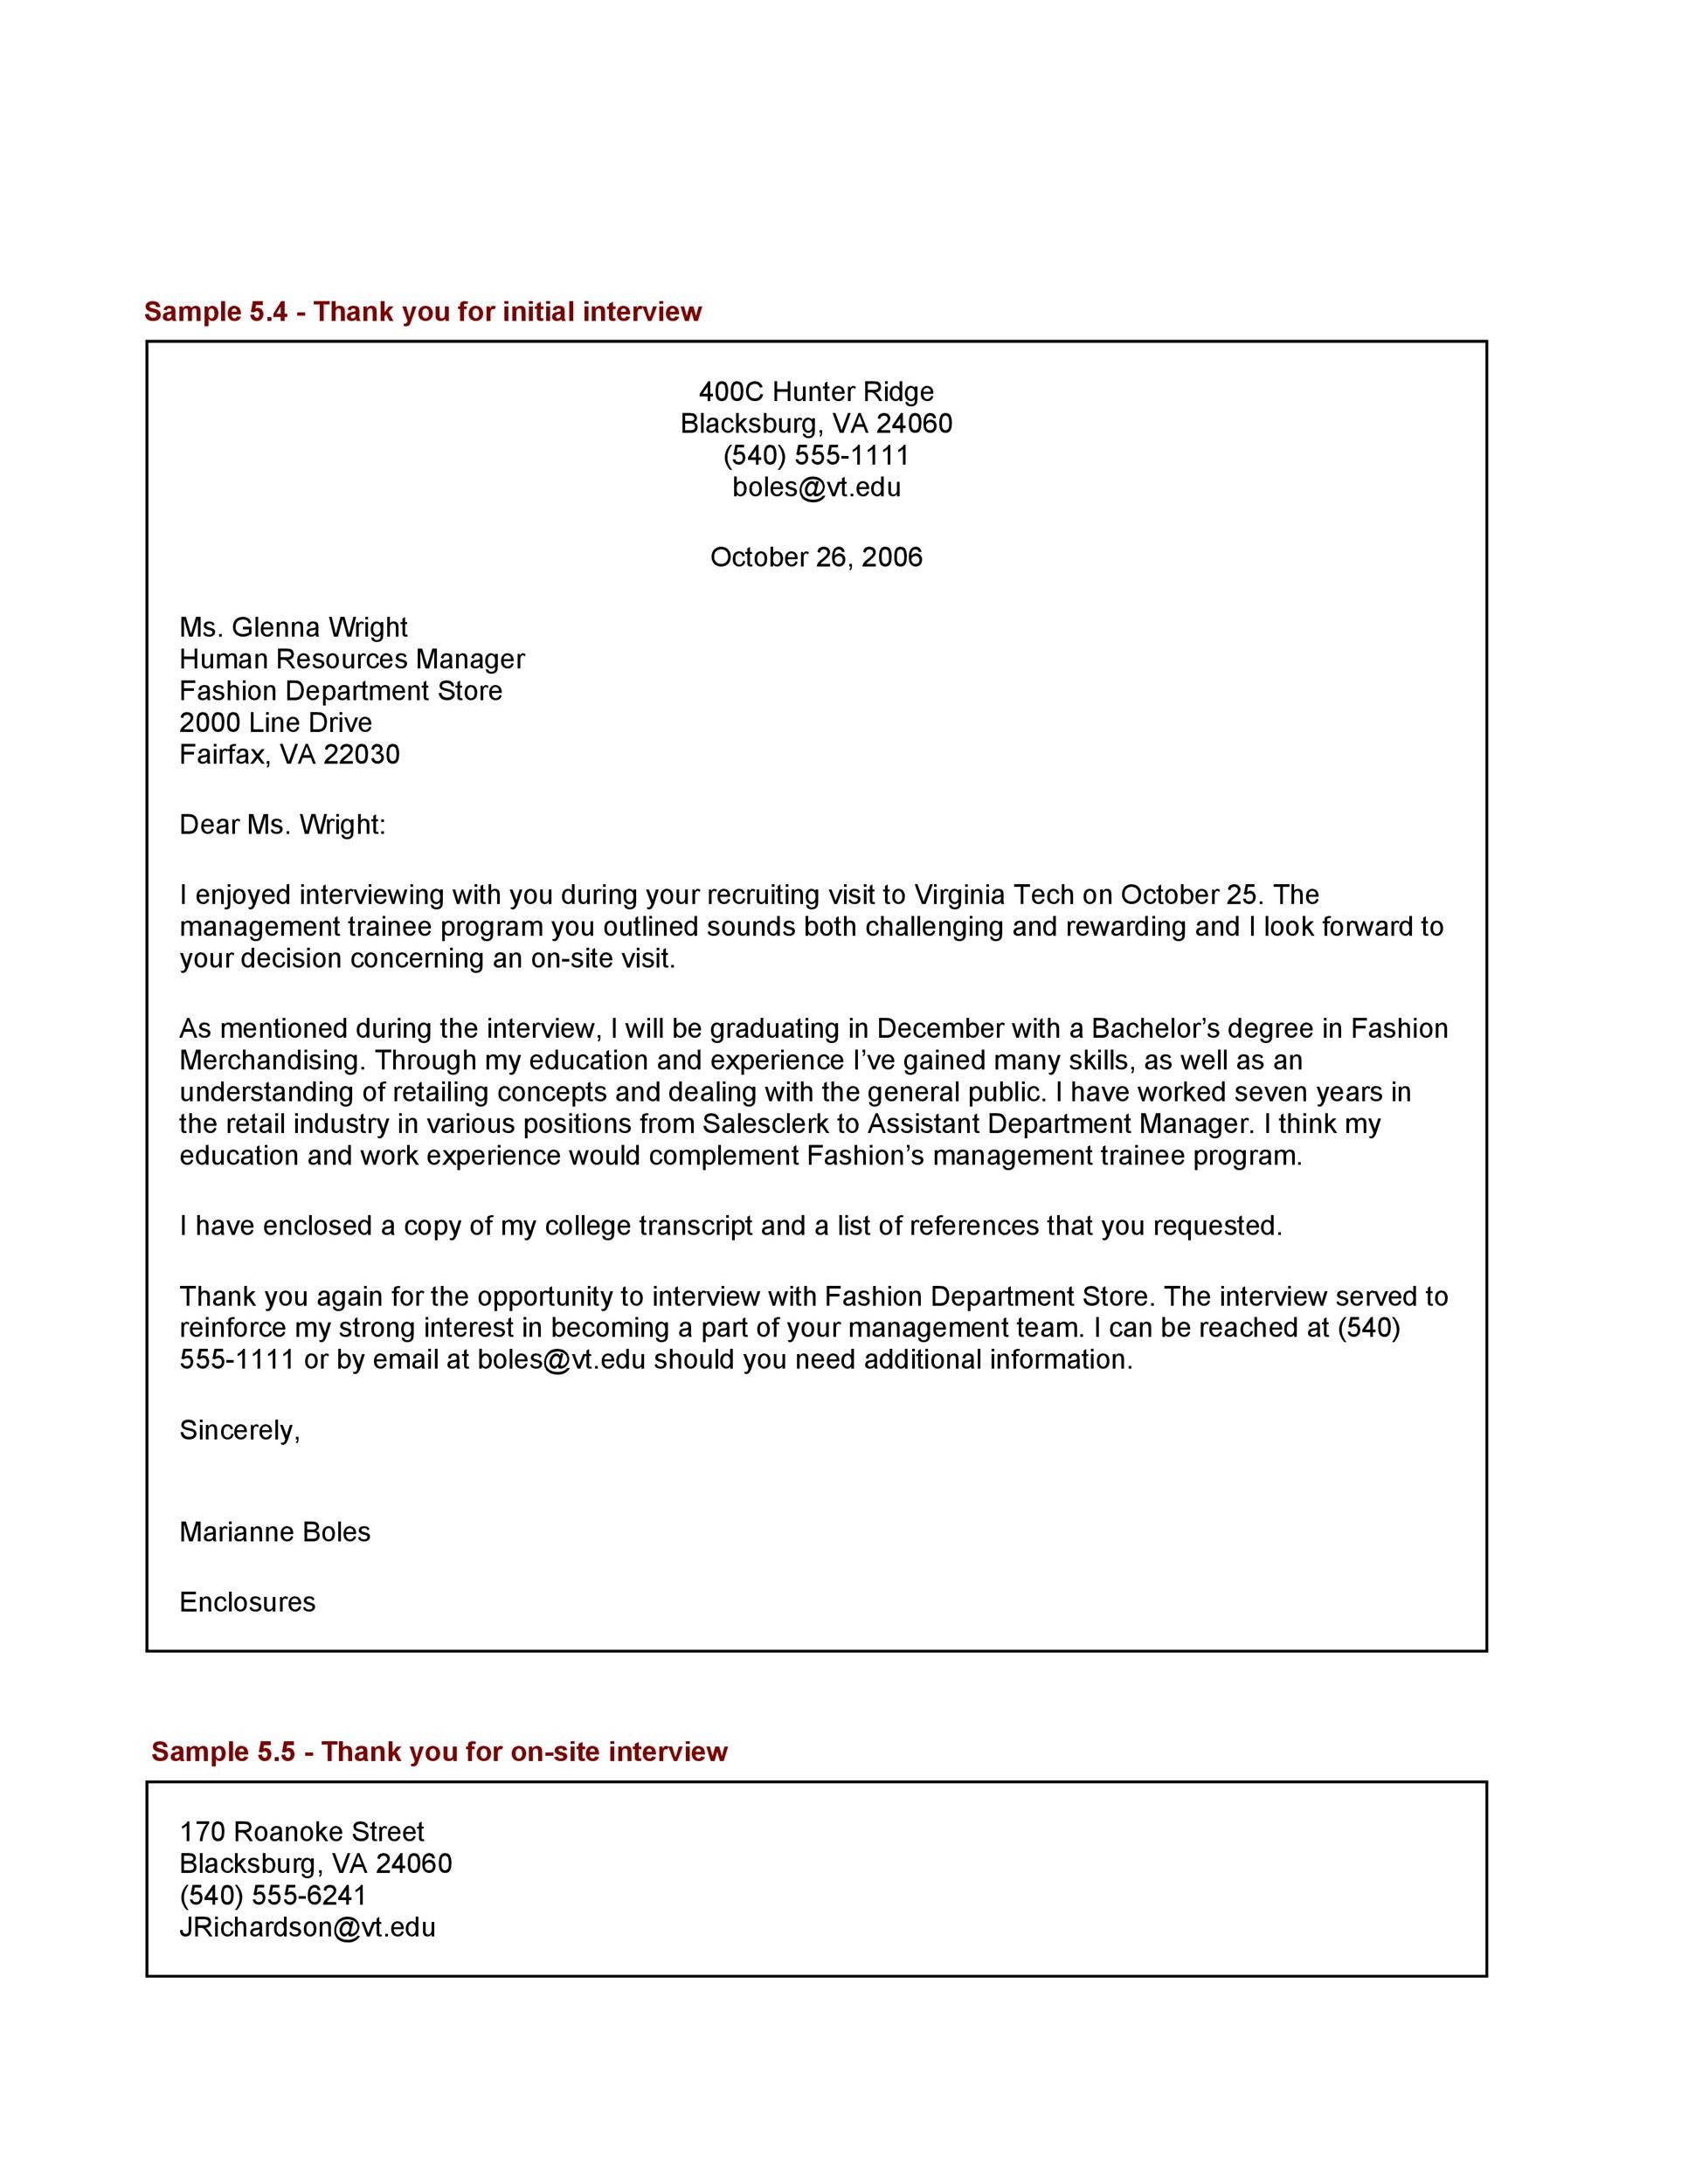 internal interview thank you email template - 40 thank you email after interview templates template lab